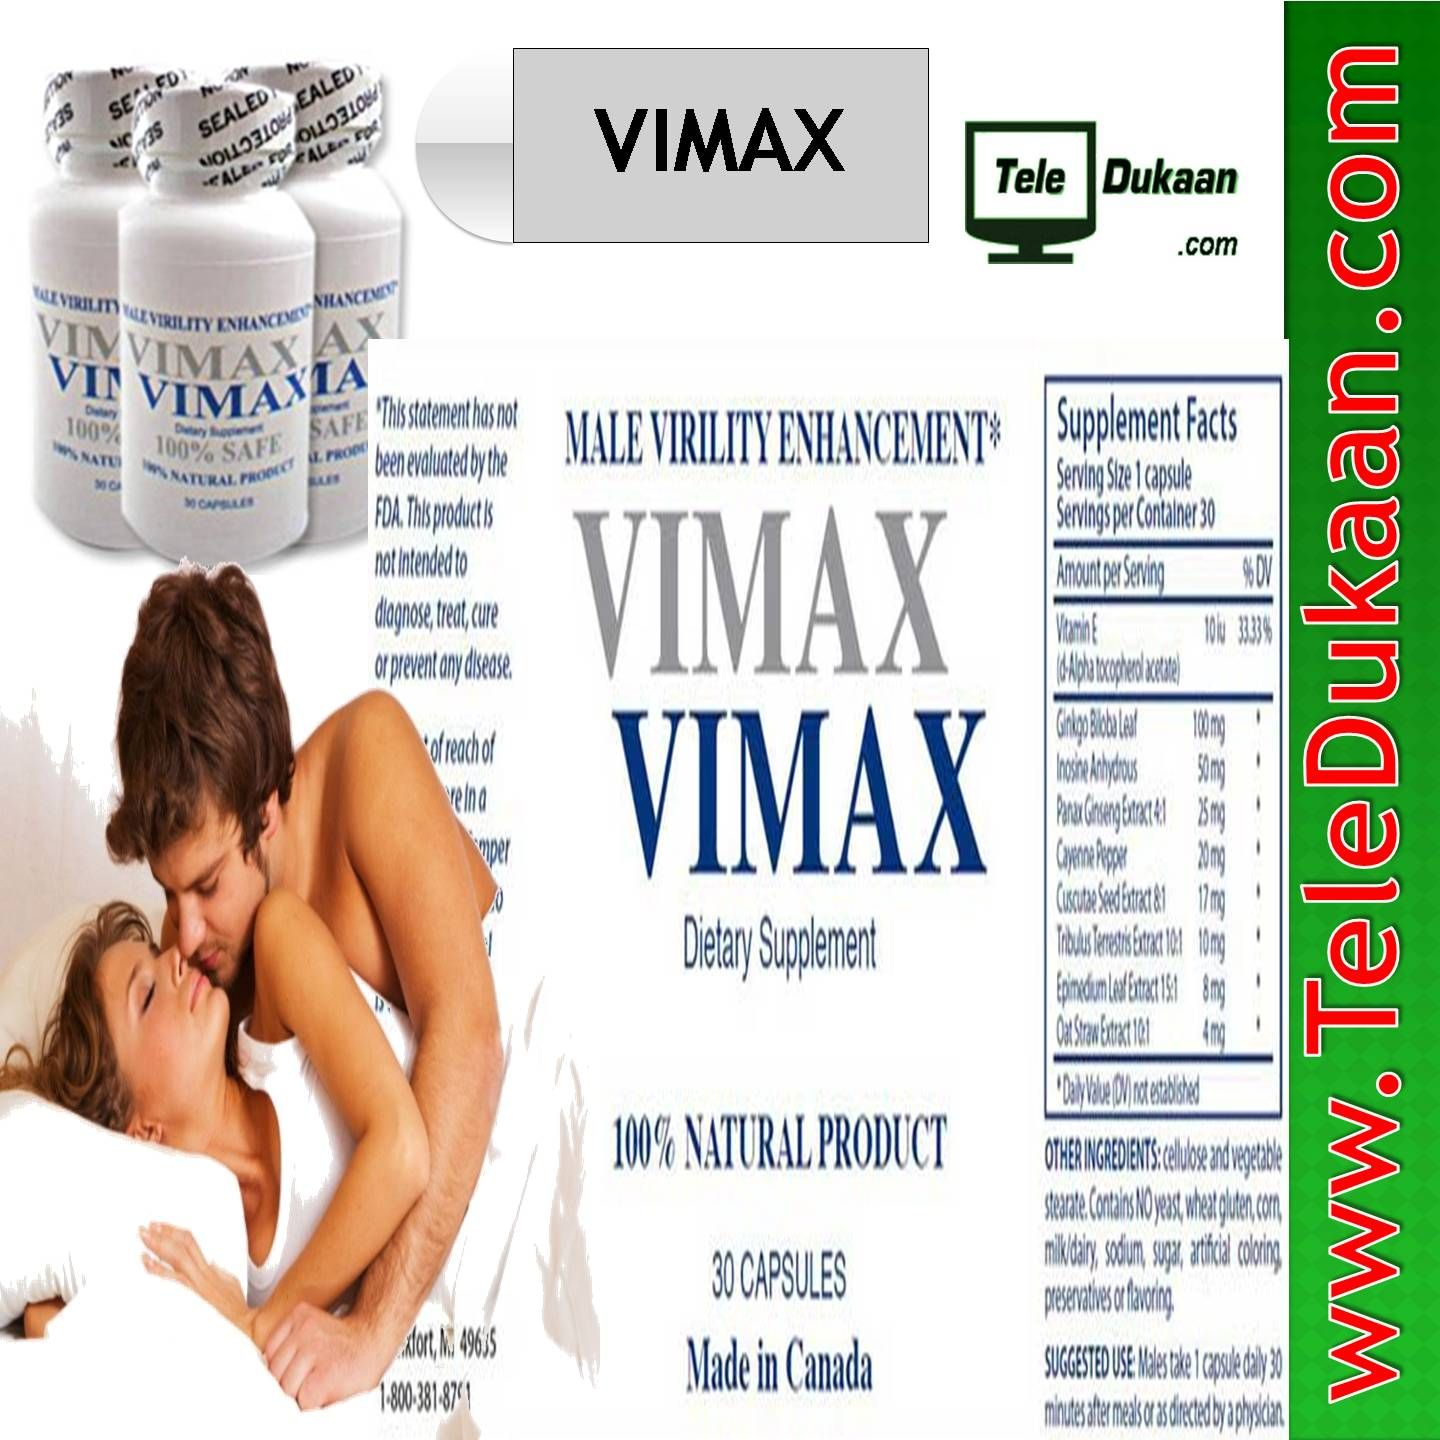 vimax vimax pills vimax in pakistan vimax results vimax pills in